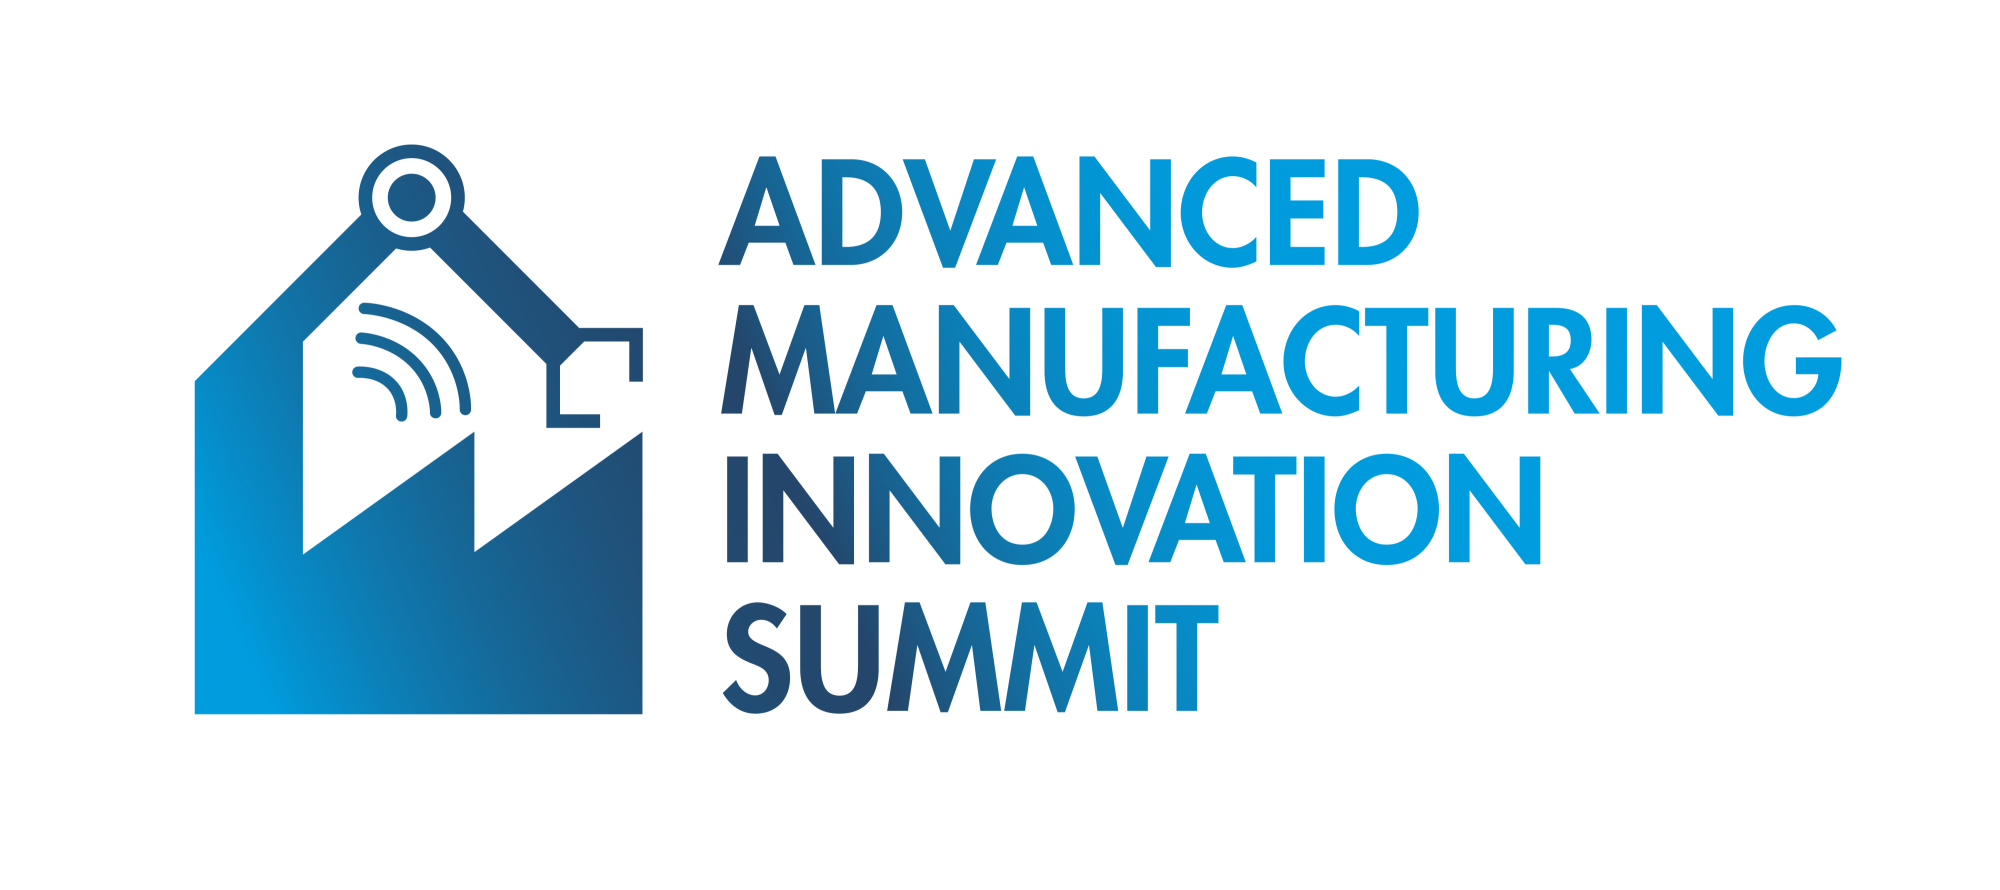 Appointment with the innovation for the 4.0 transformation of the industry